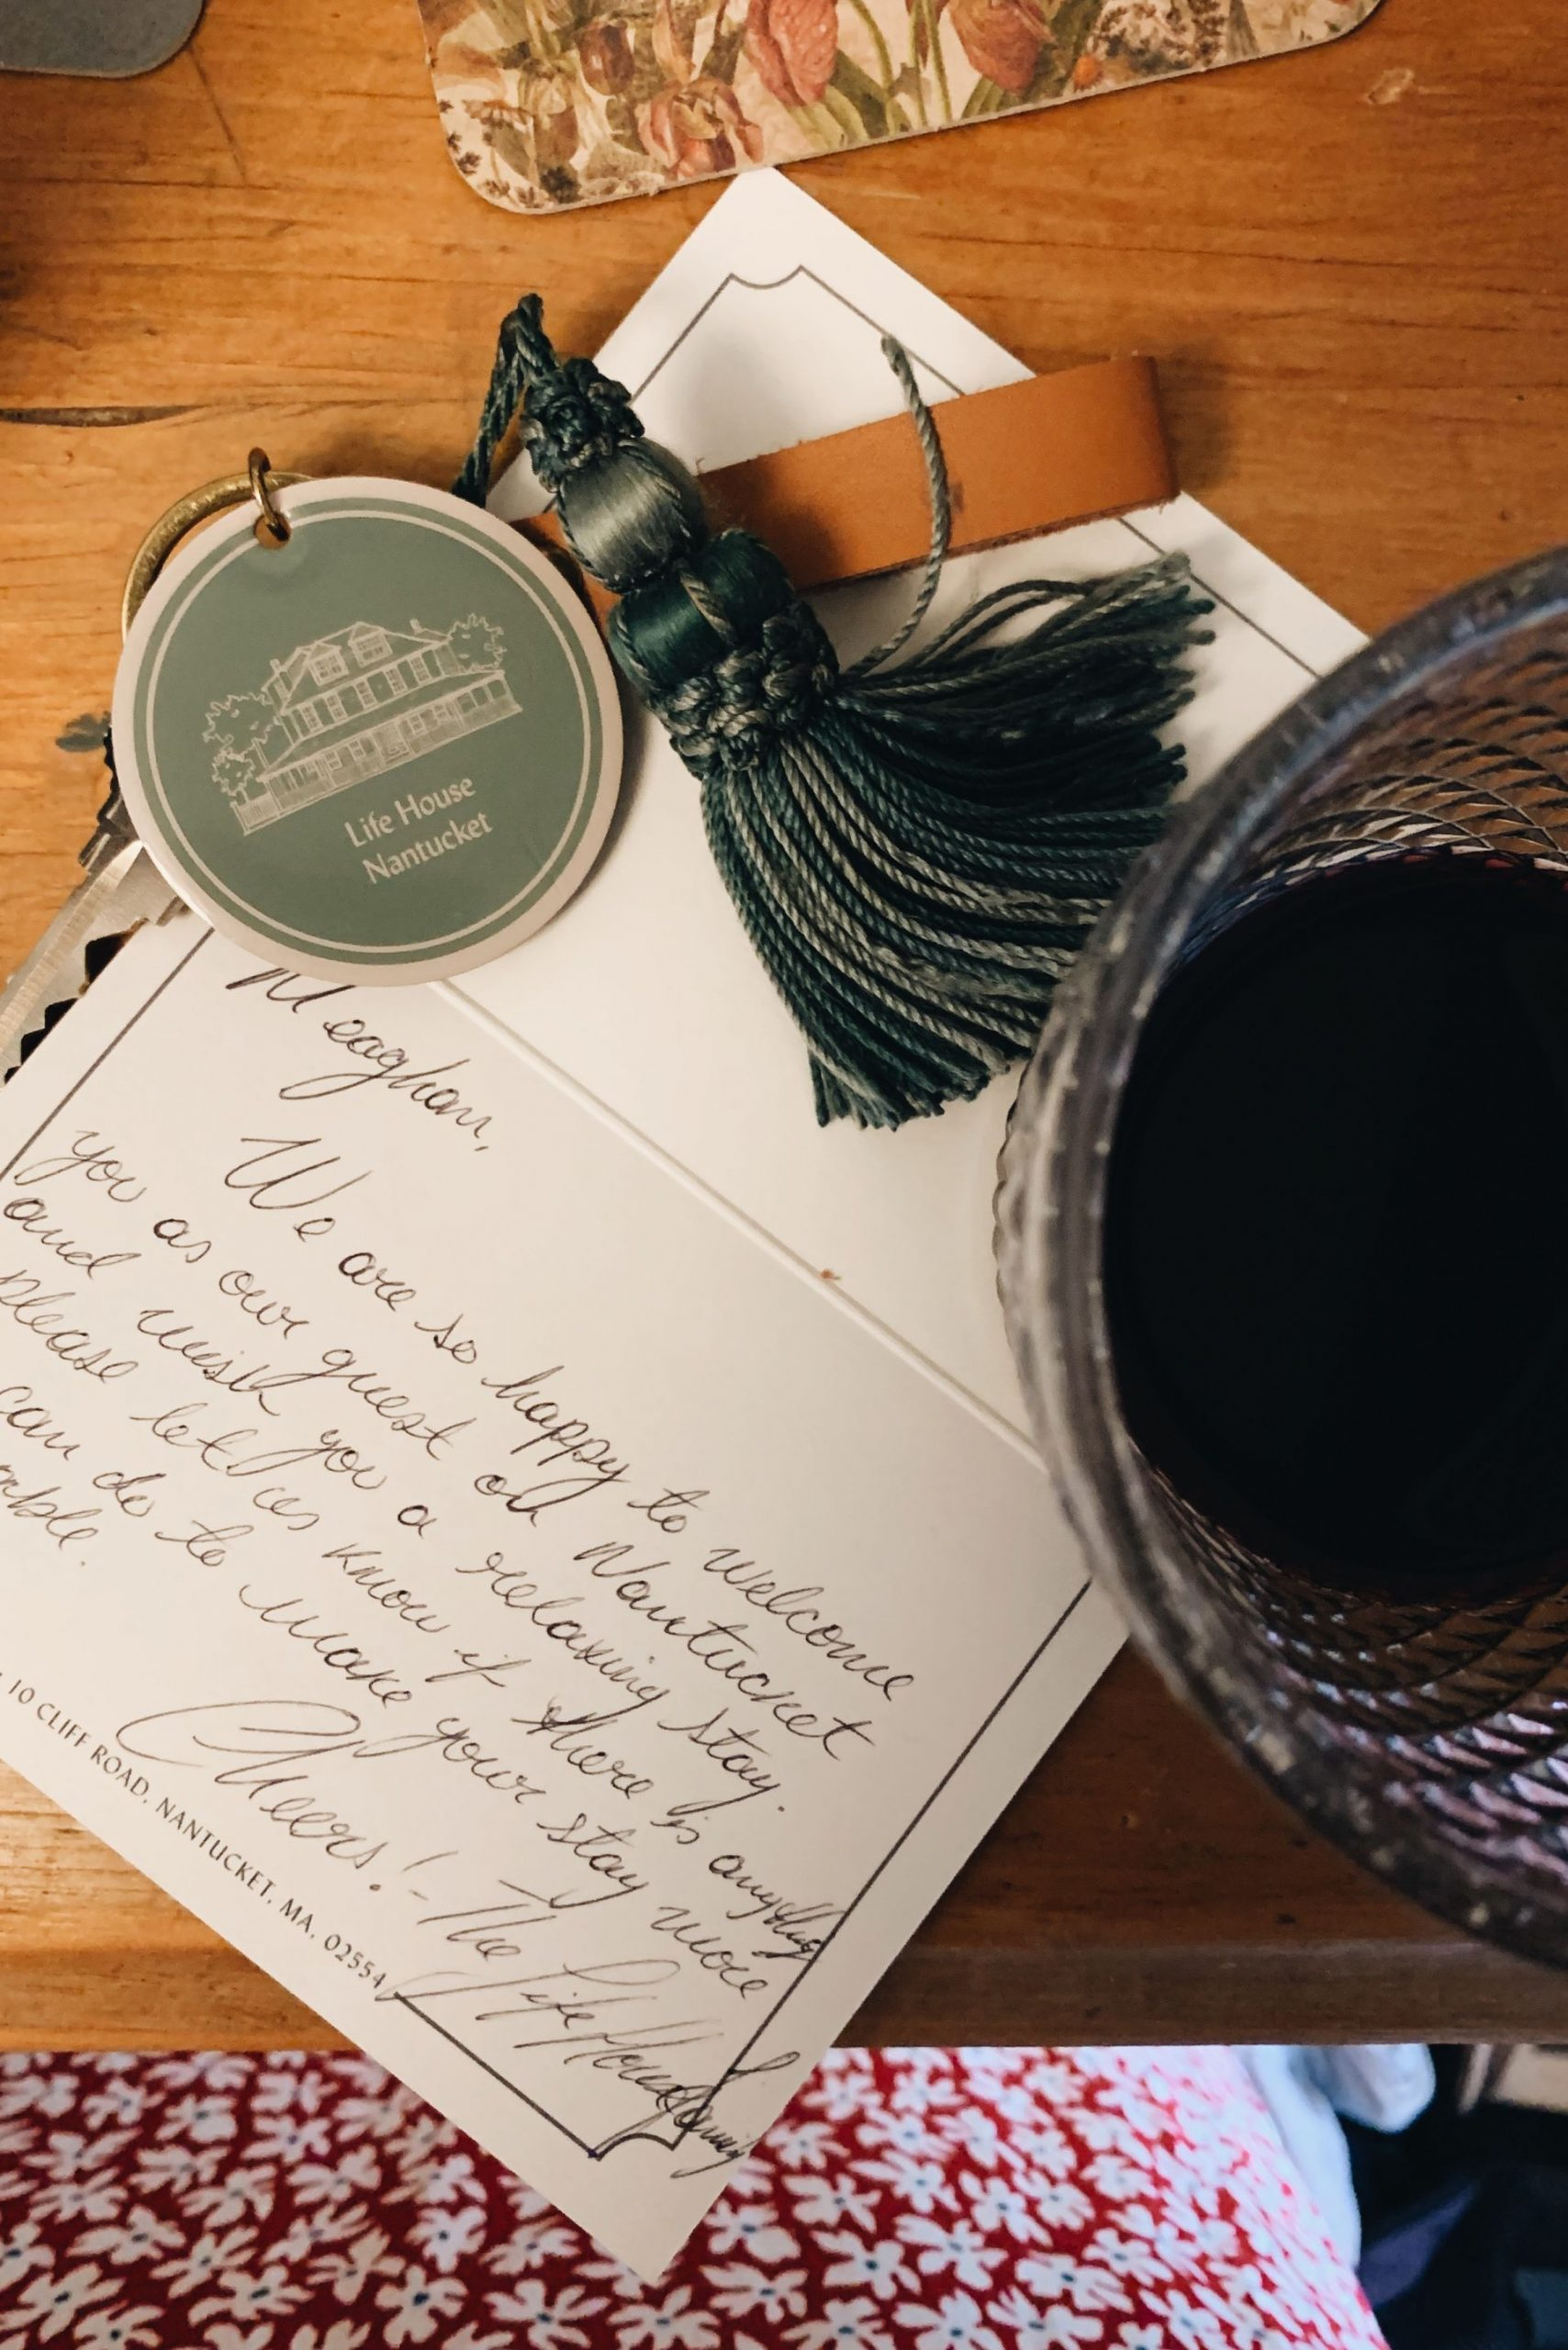 Personal note from Life House Nantucket